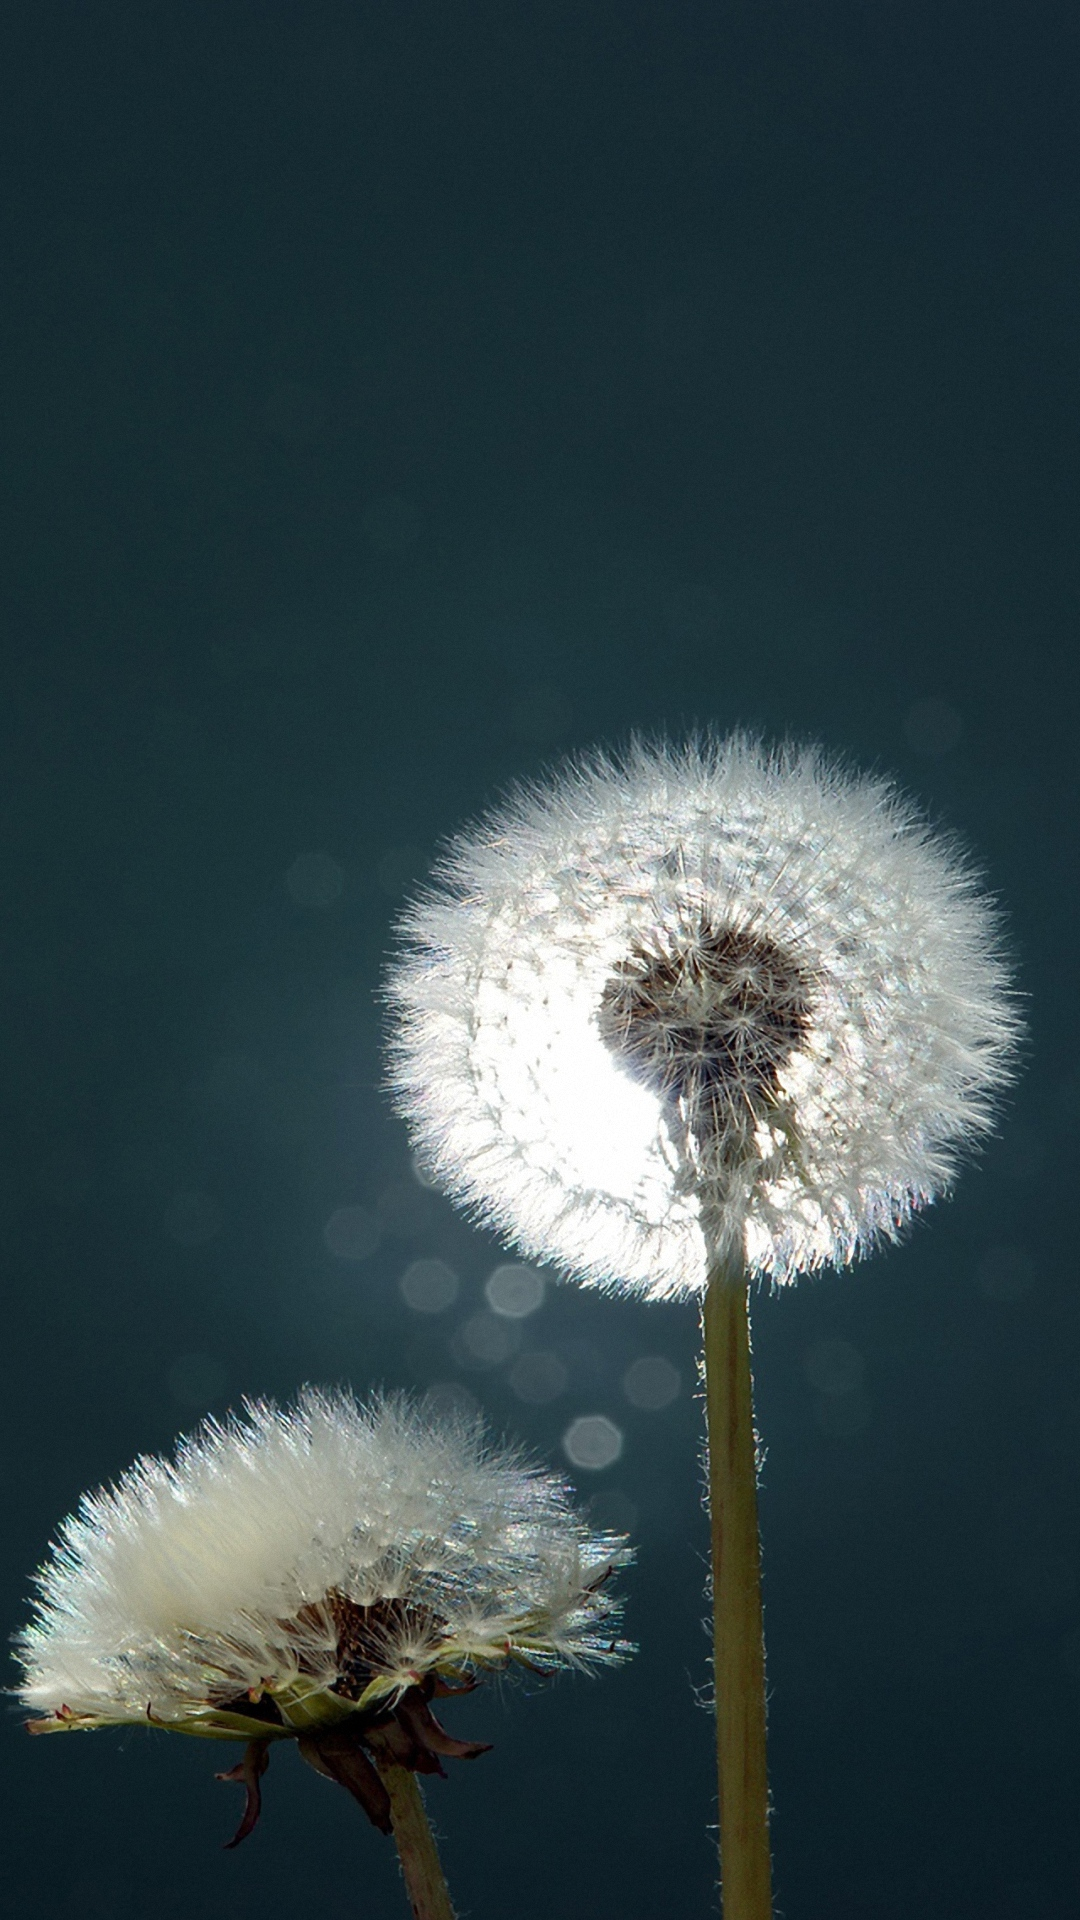 download dandelions close-up wallpaper for samsung galaxy note 3 :